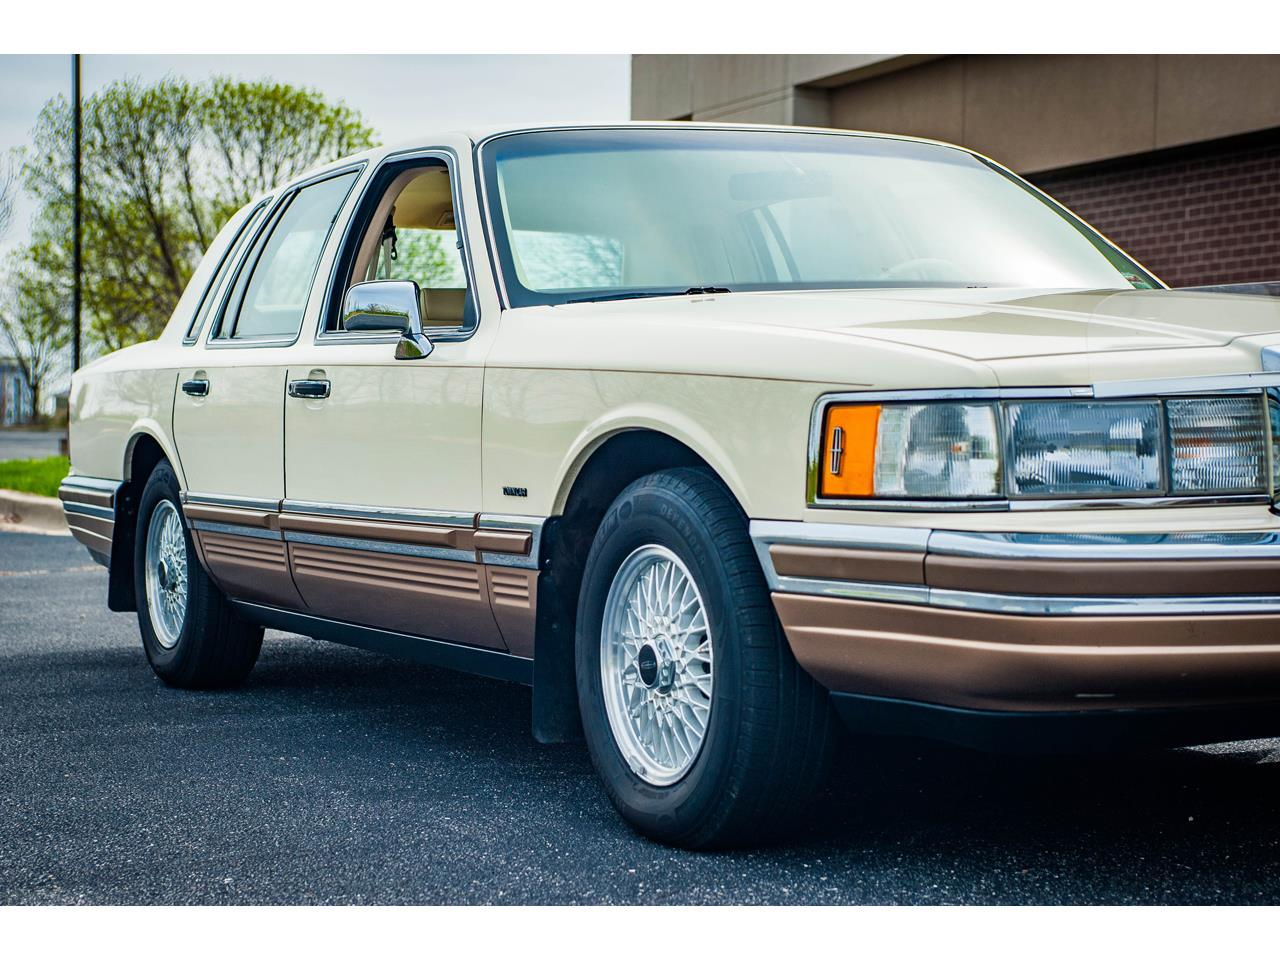 Large Picture of 1990 Lincoln Town Car located in Illinois - $16,500.00 Offered by Gateway Classic Cars - St. Louis - QB8G